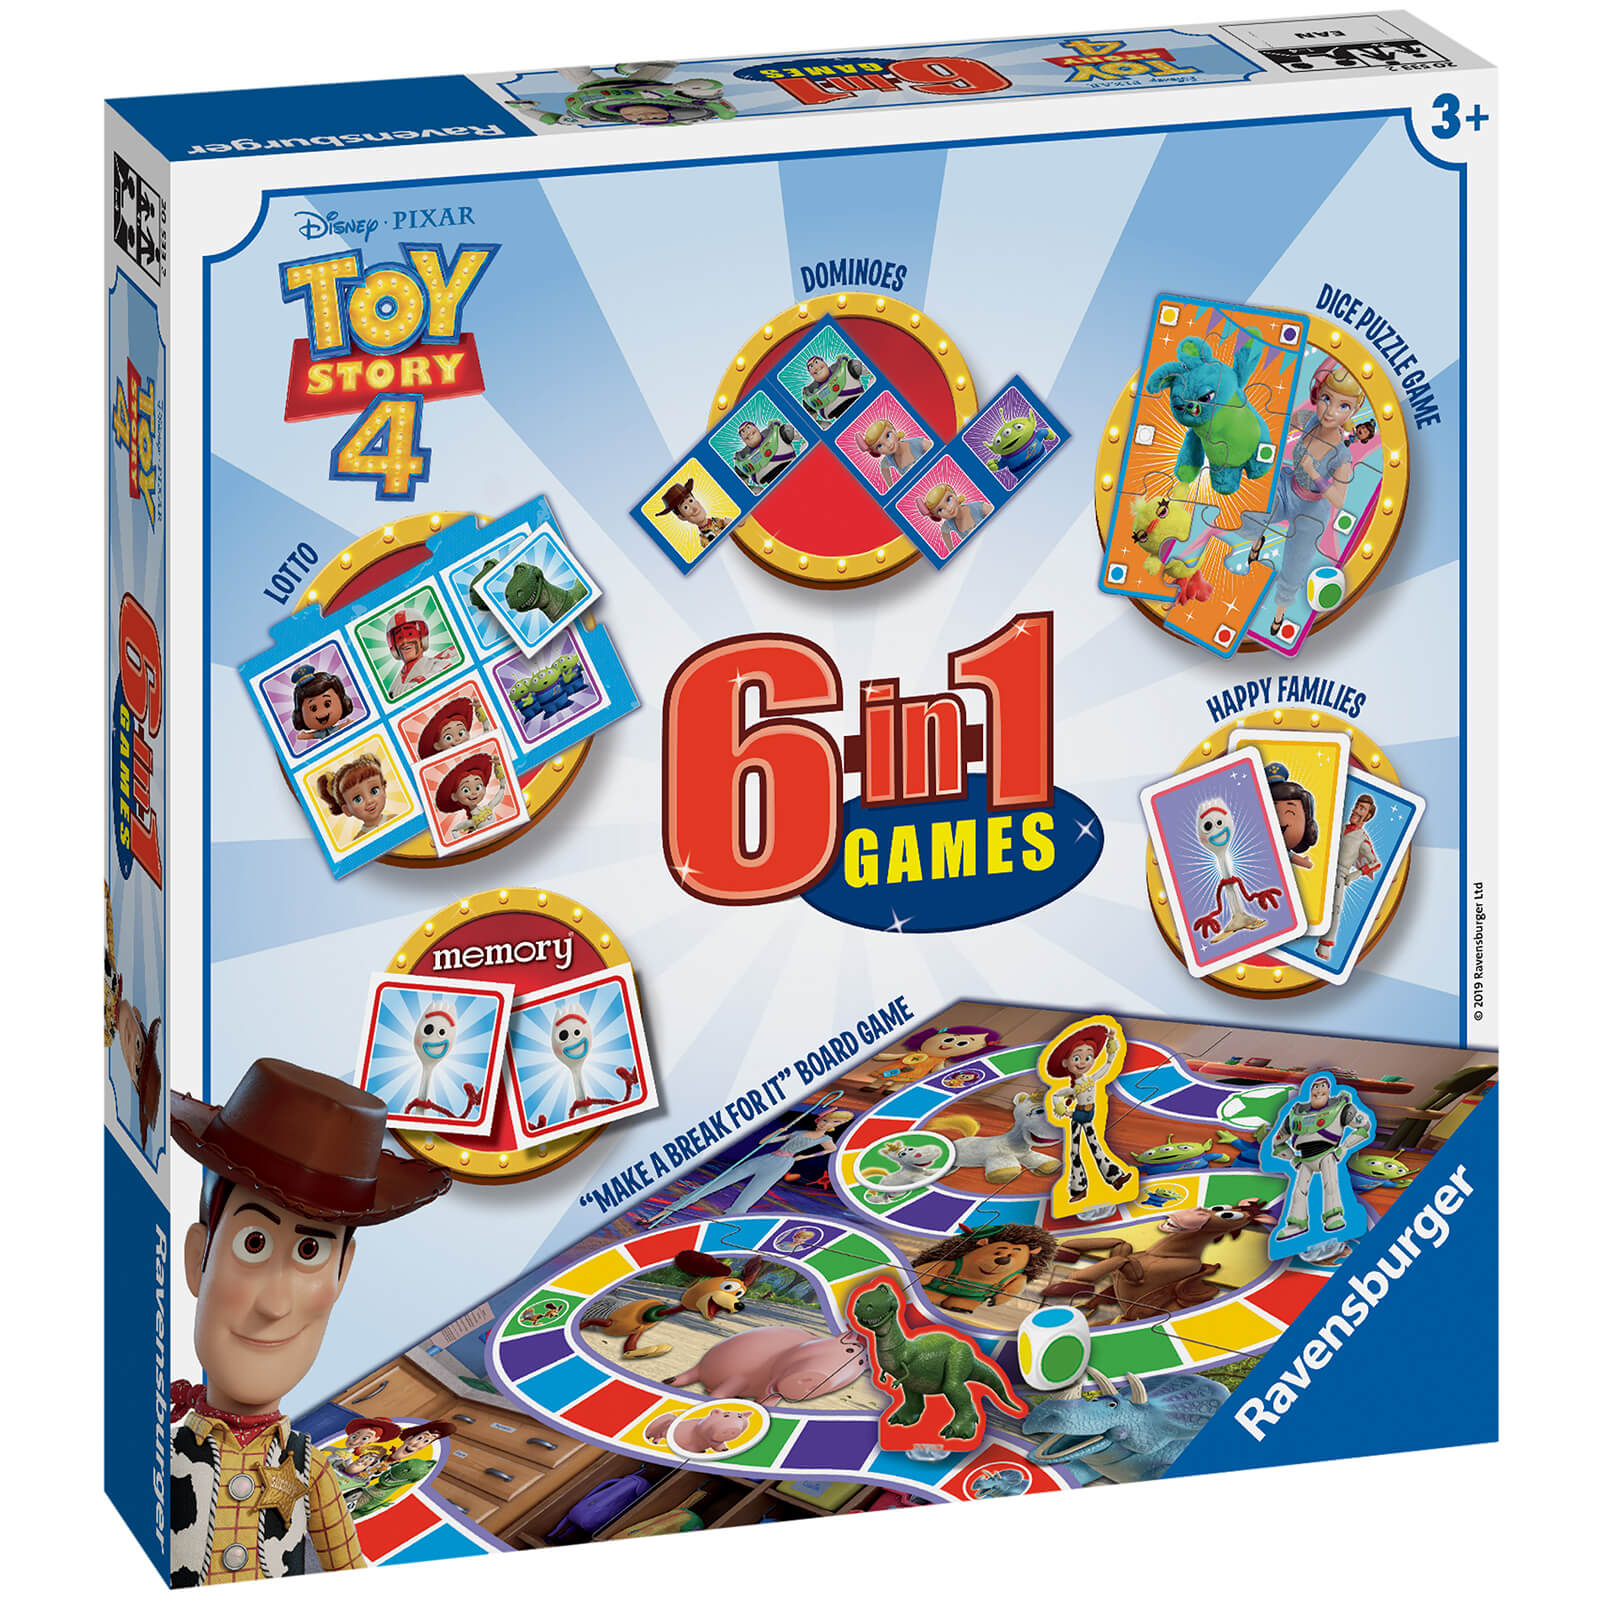 Image of Ravensburger Toy Story 4 - 6 in 1 Games Box